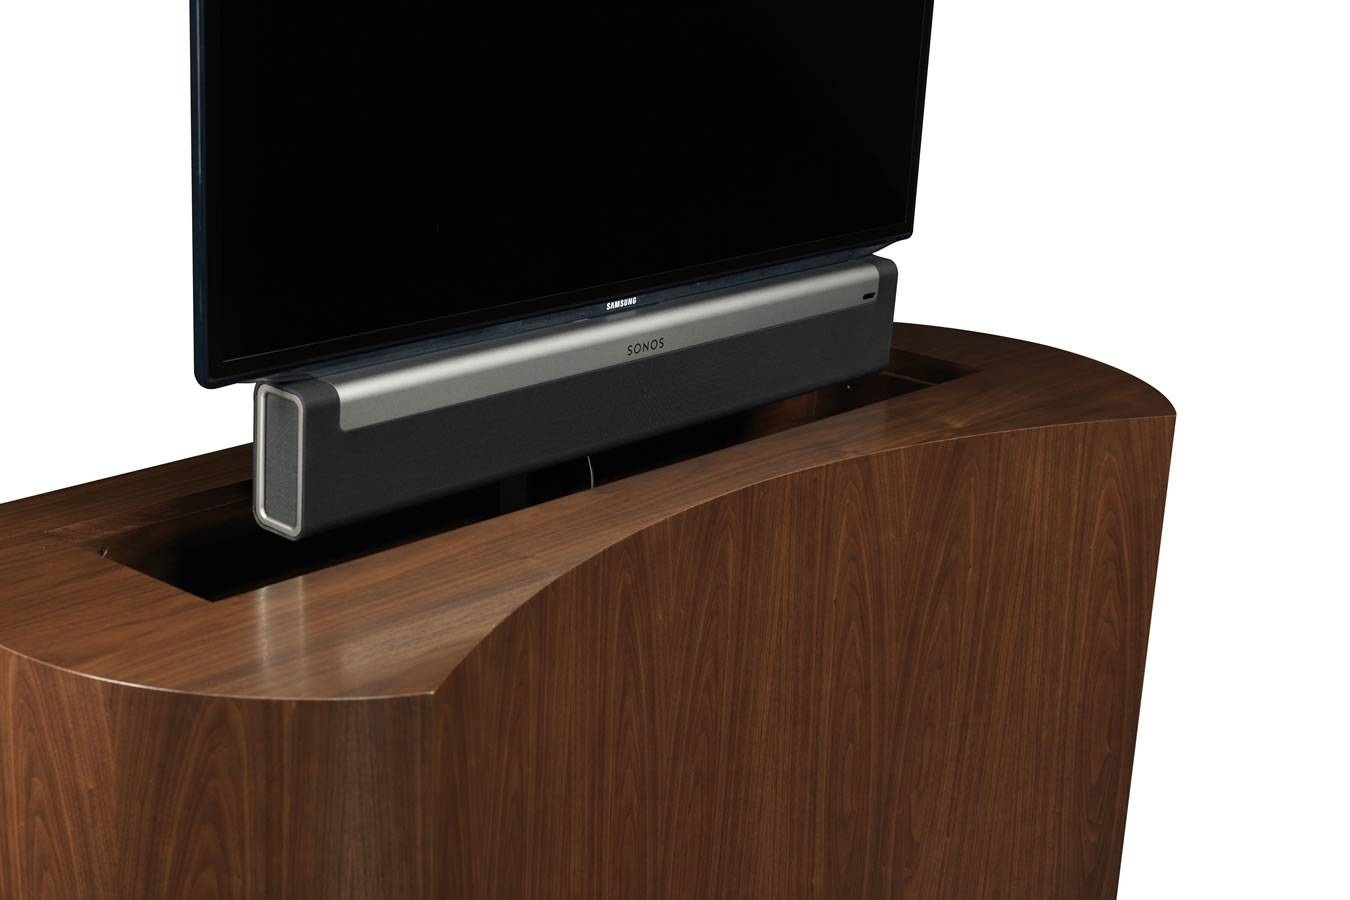 sonos sound bar playbar with tv lift cabinet with sonos tv stands